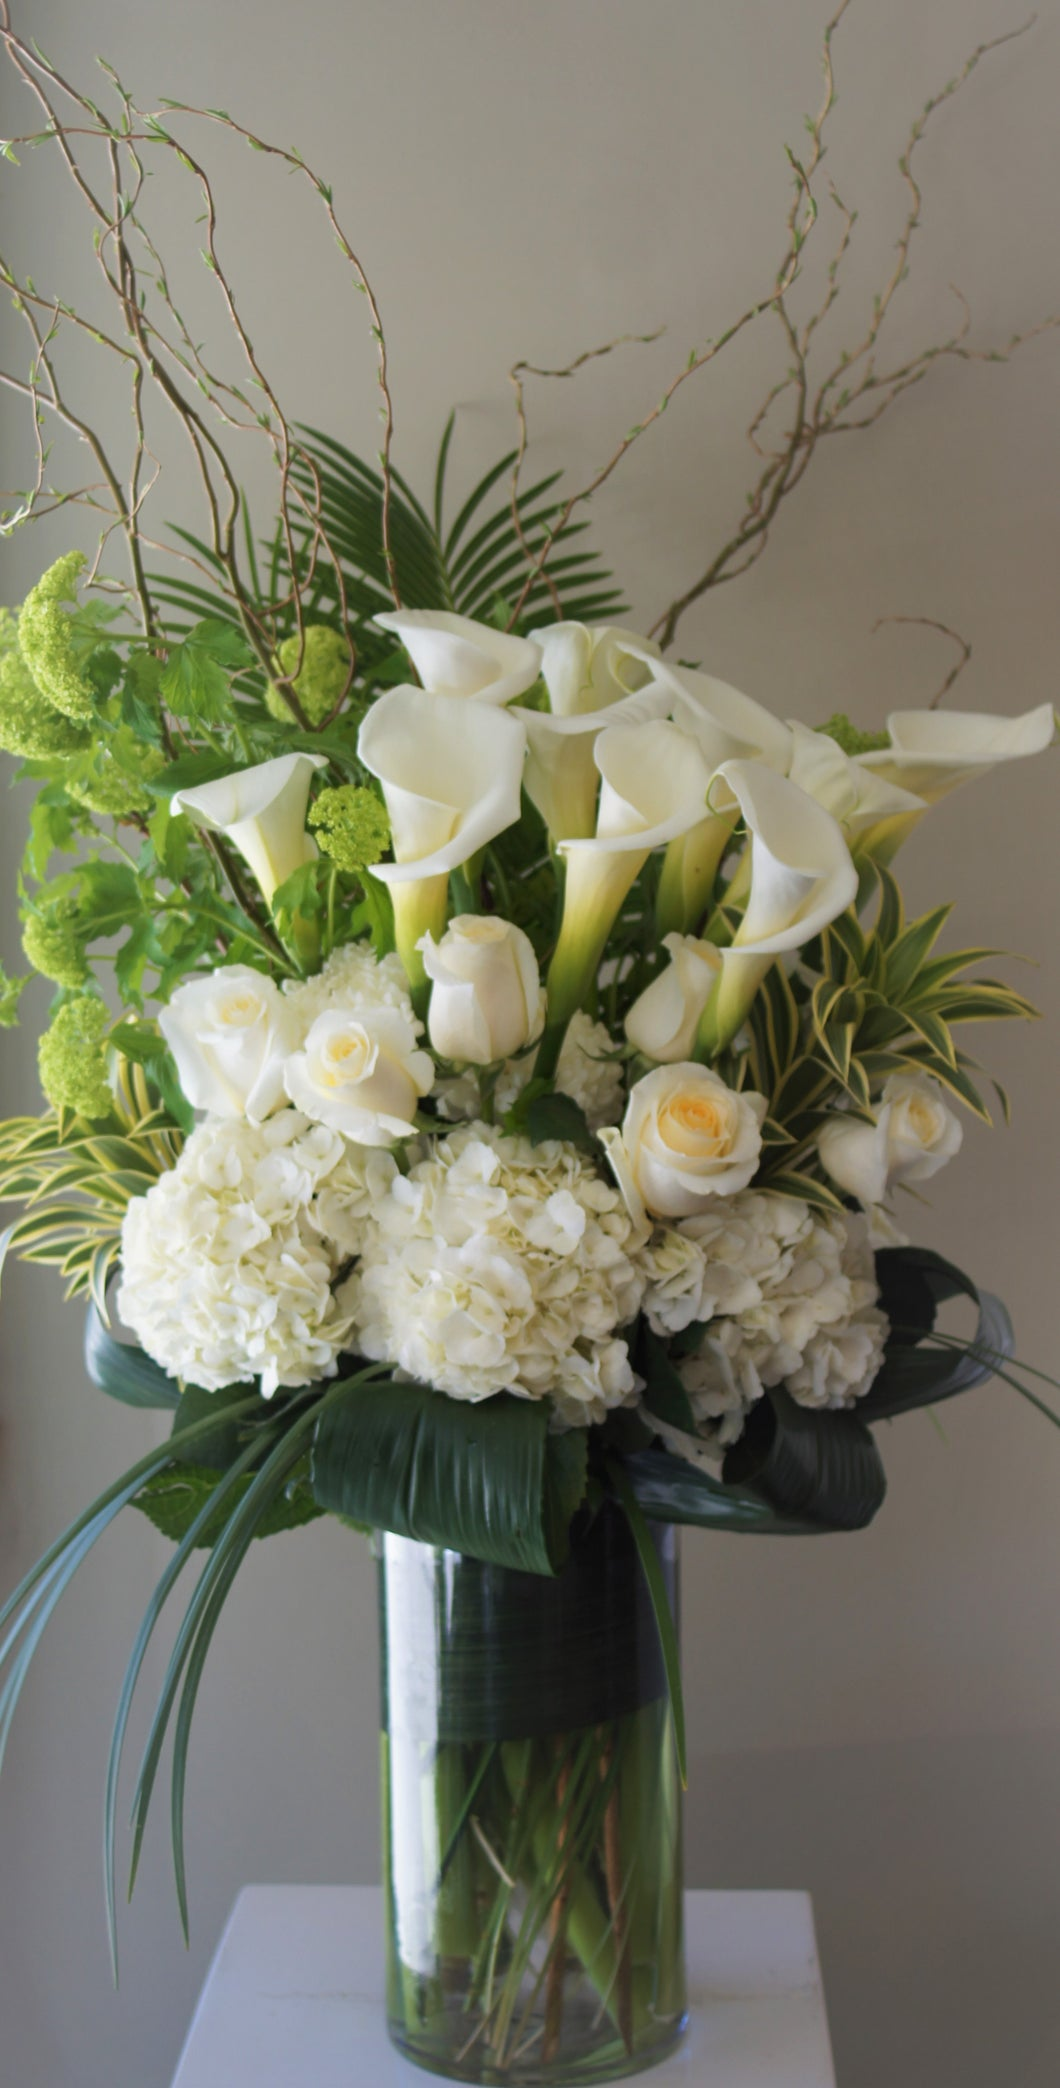 FNV151 -  Modern White and Green Vase Arrangement - Flowerplustoronto